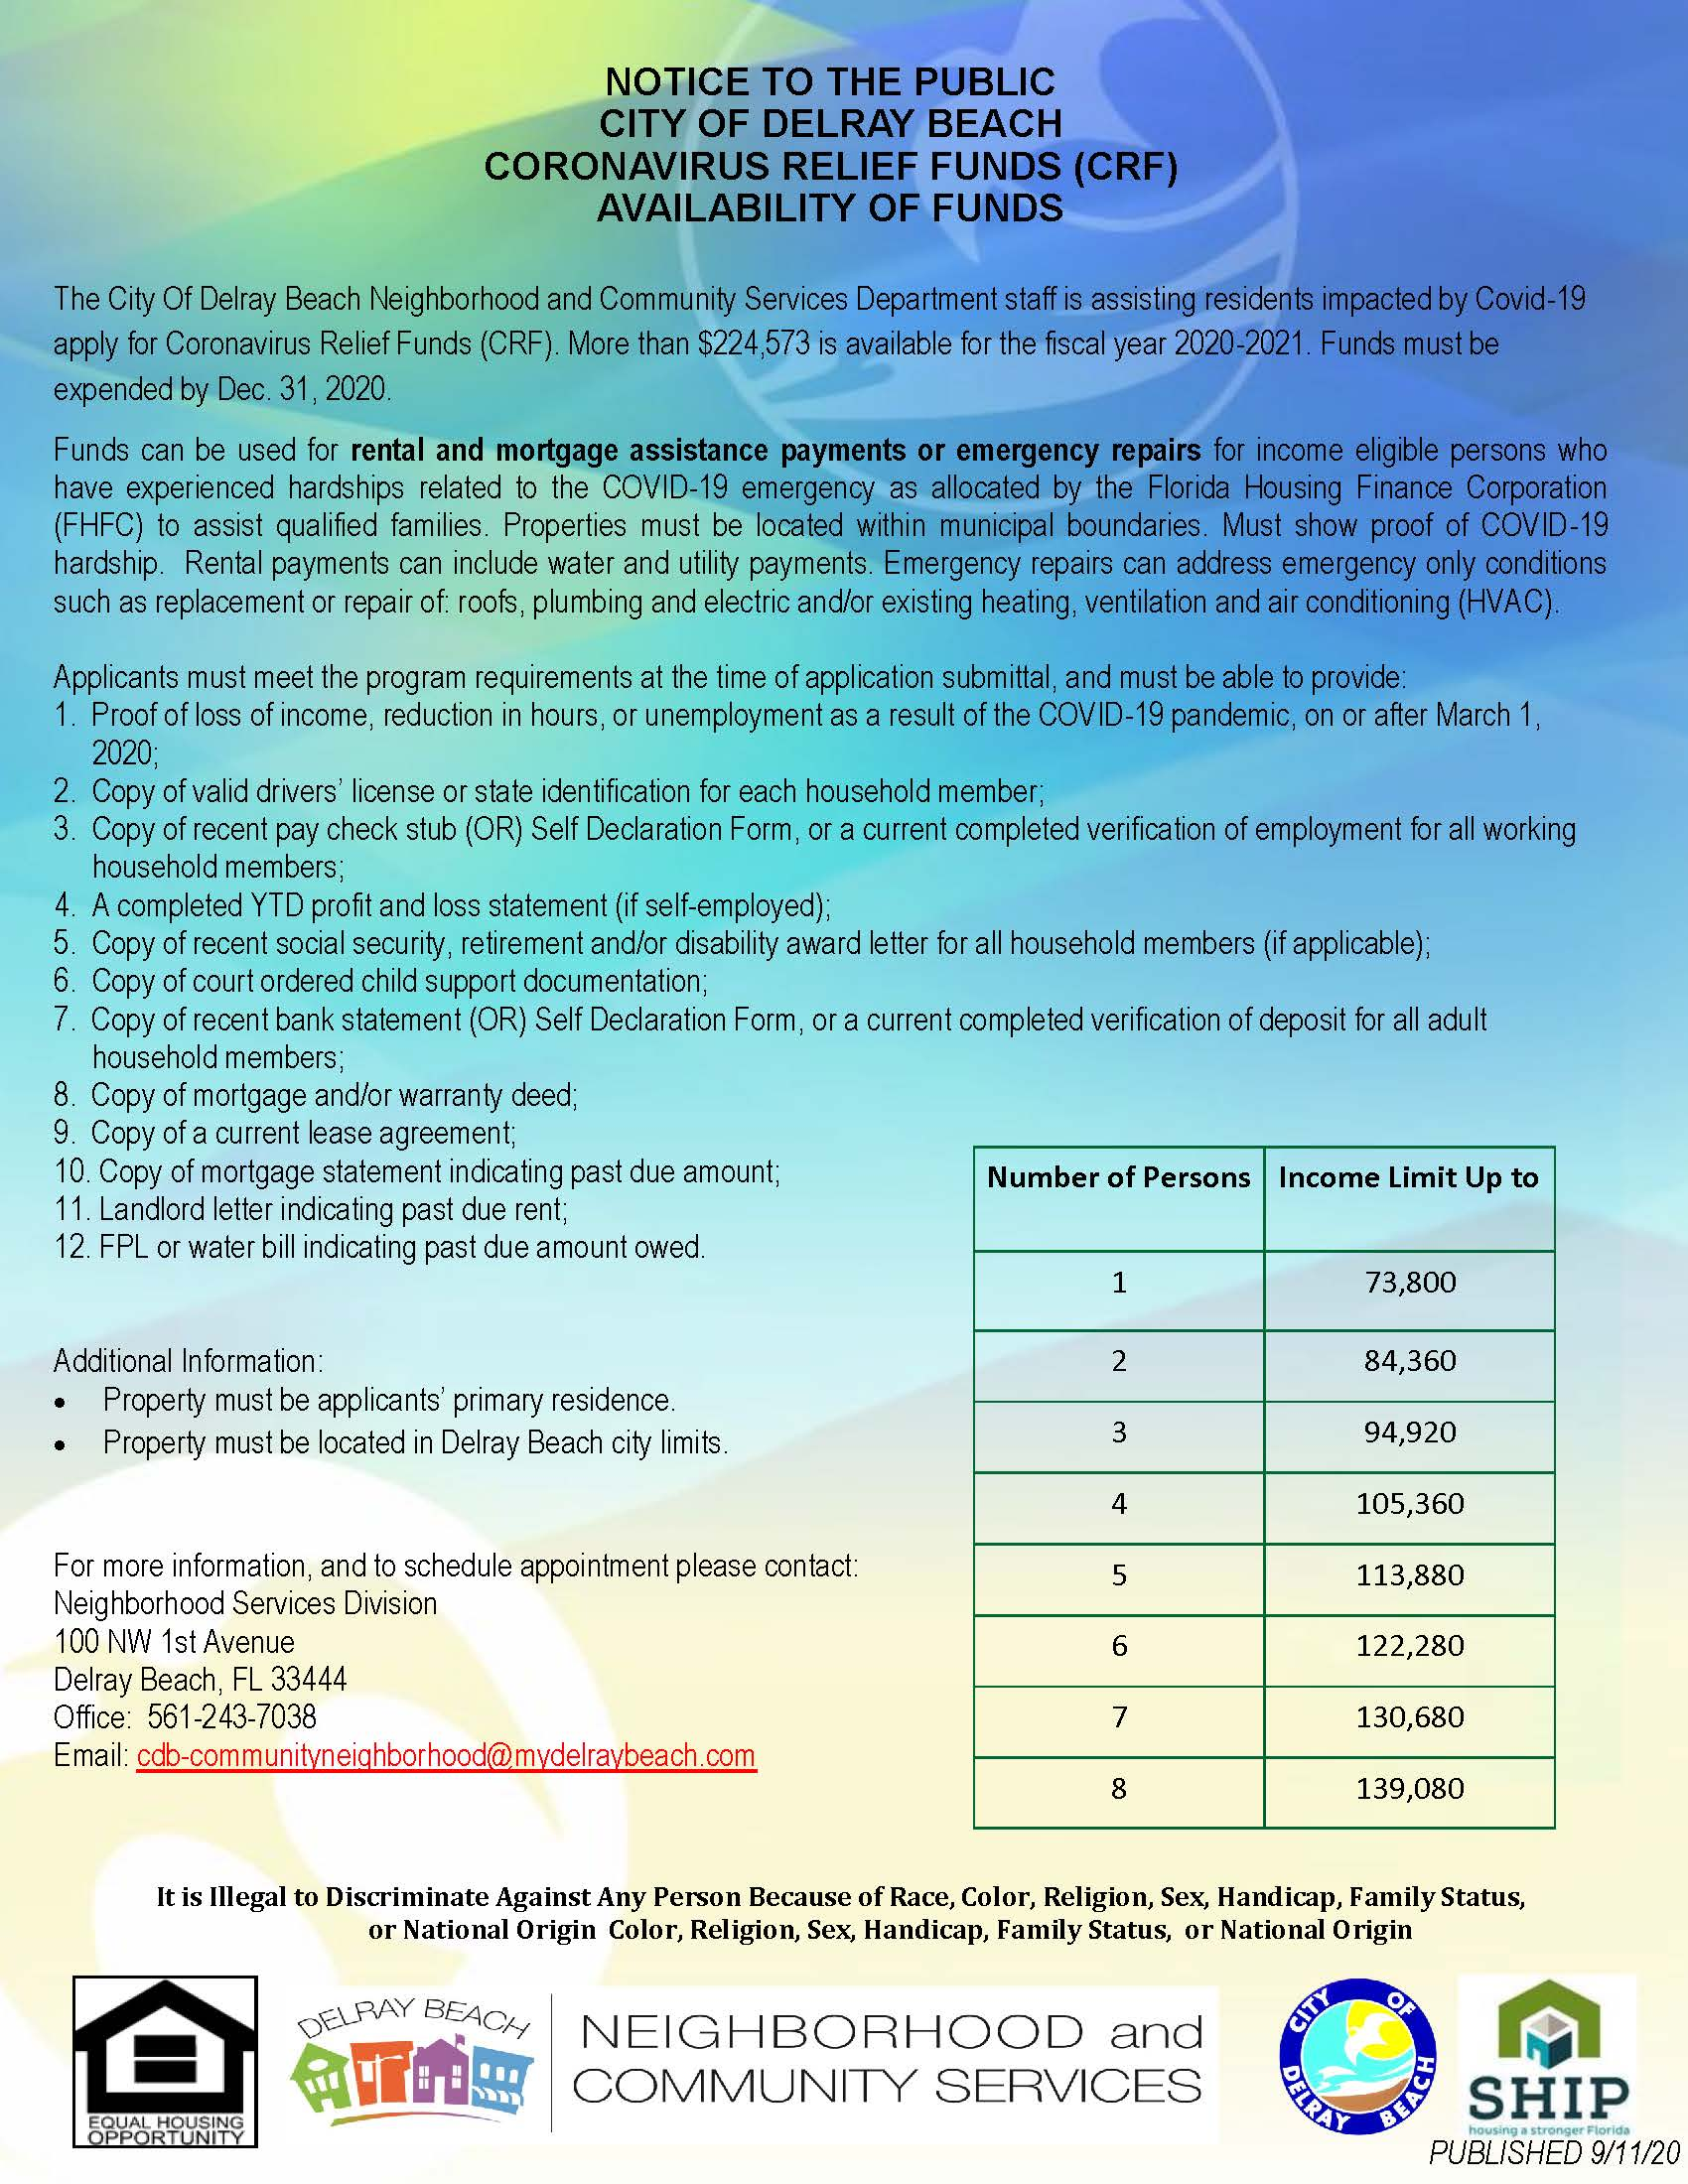 CRF Notice of Funds for families who need resources